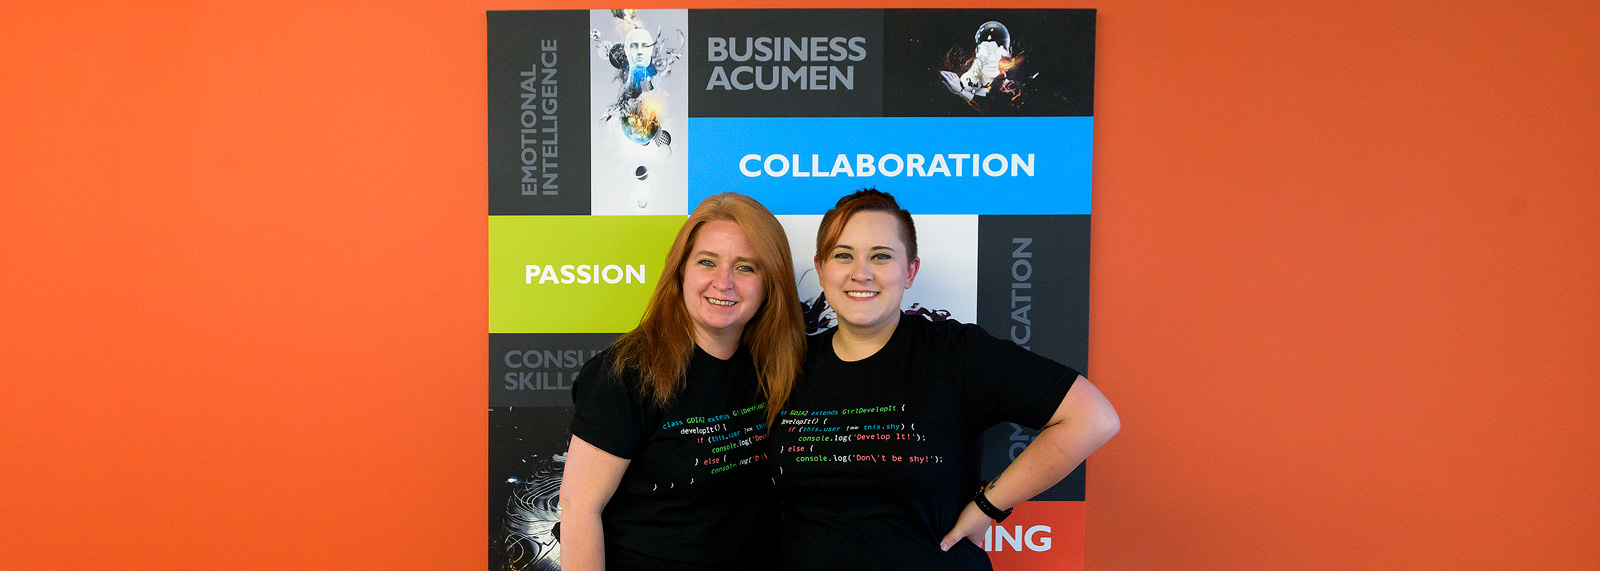 Ronda Bergman with her daughter and coworker Erin at Pillar Technology